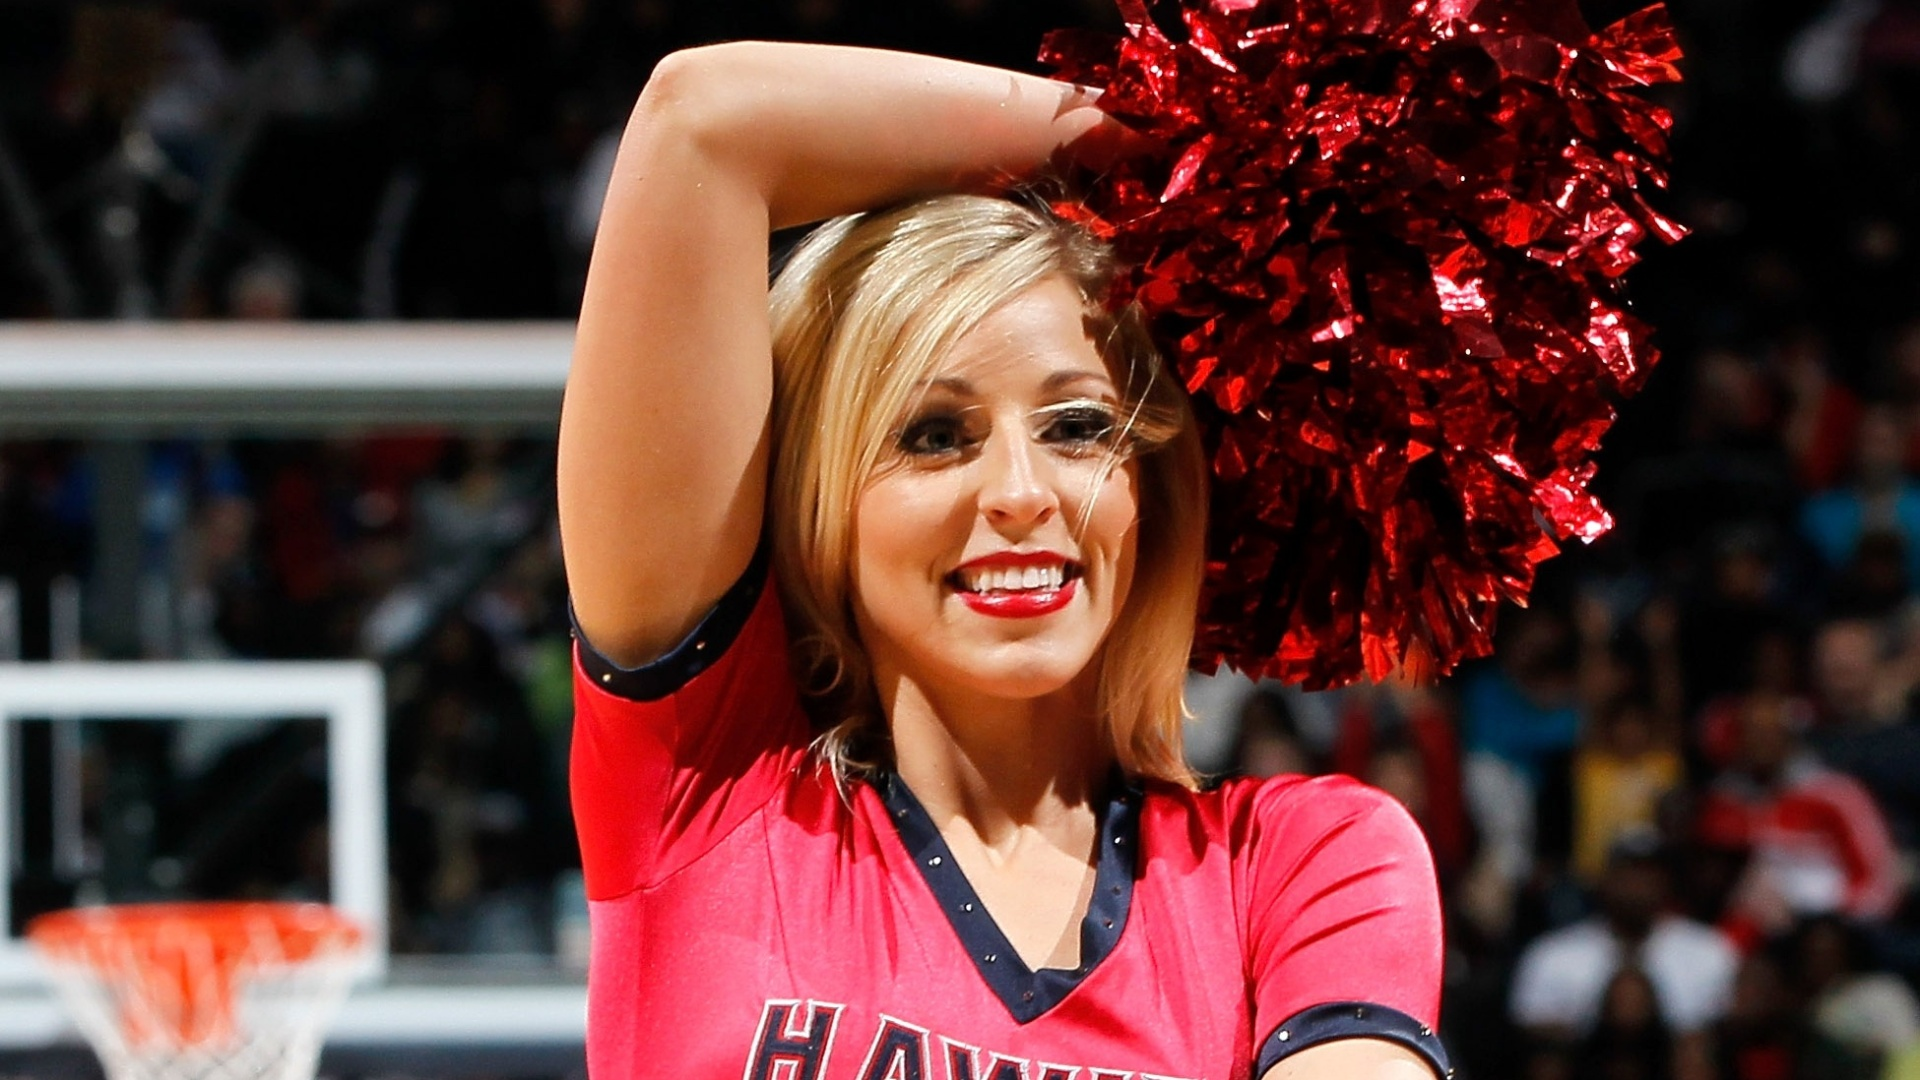 Cheerleader do Atlanta Hawks durante jogo contra o Miami Heat em Atlanta, Georgia